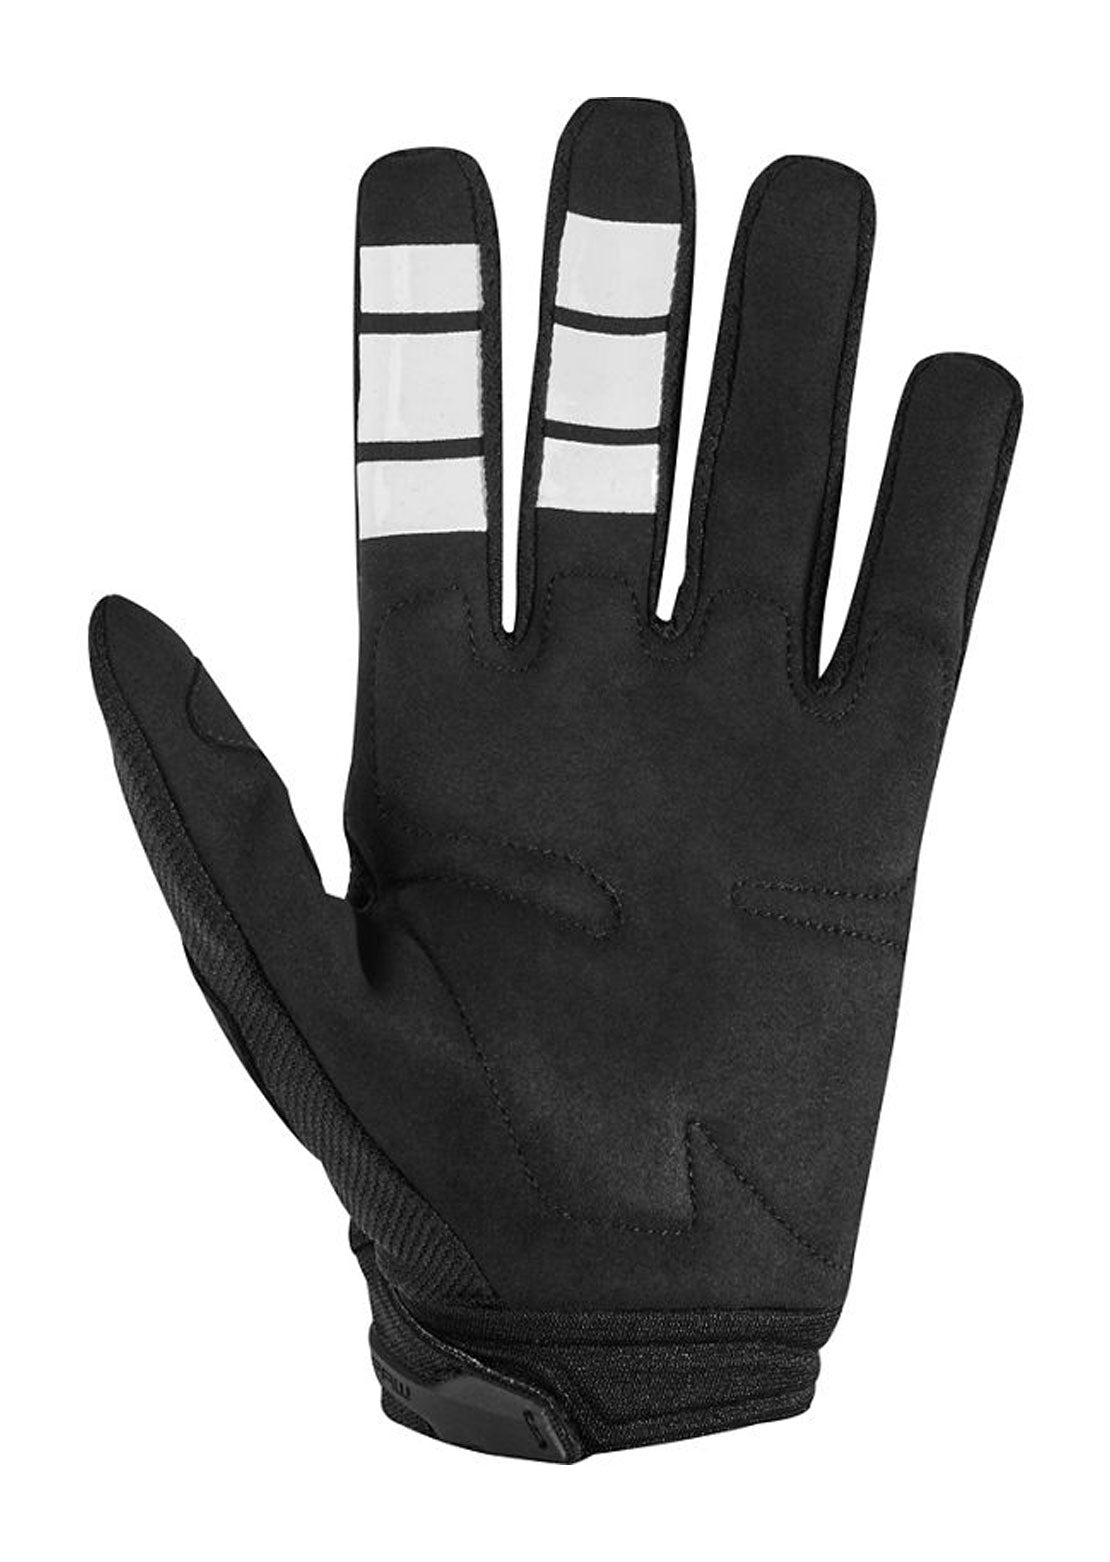 Fox Women's Dirtpaw Prix Mountain Bike Gloves Black